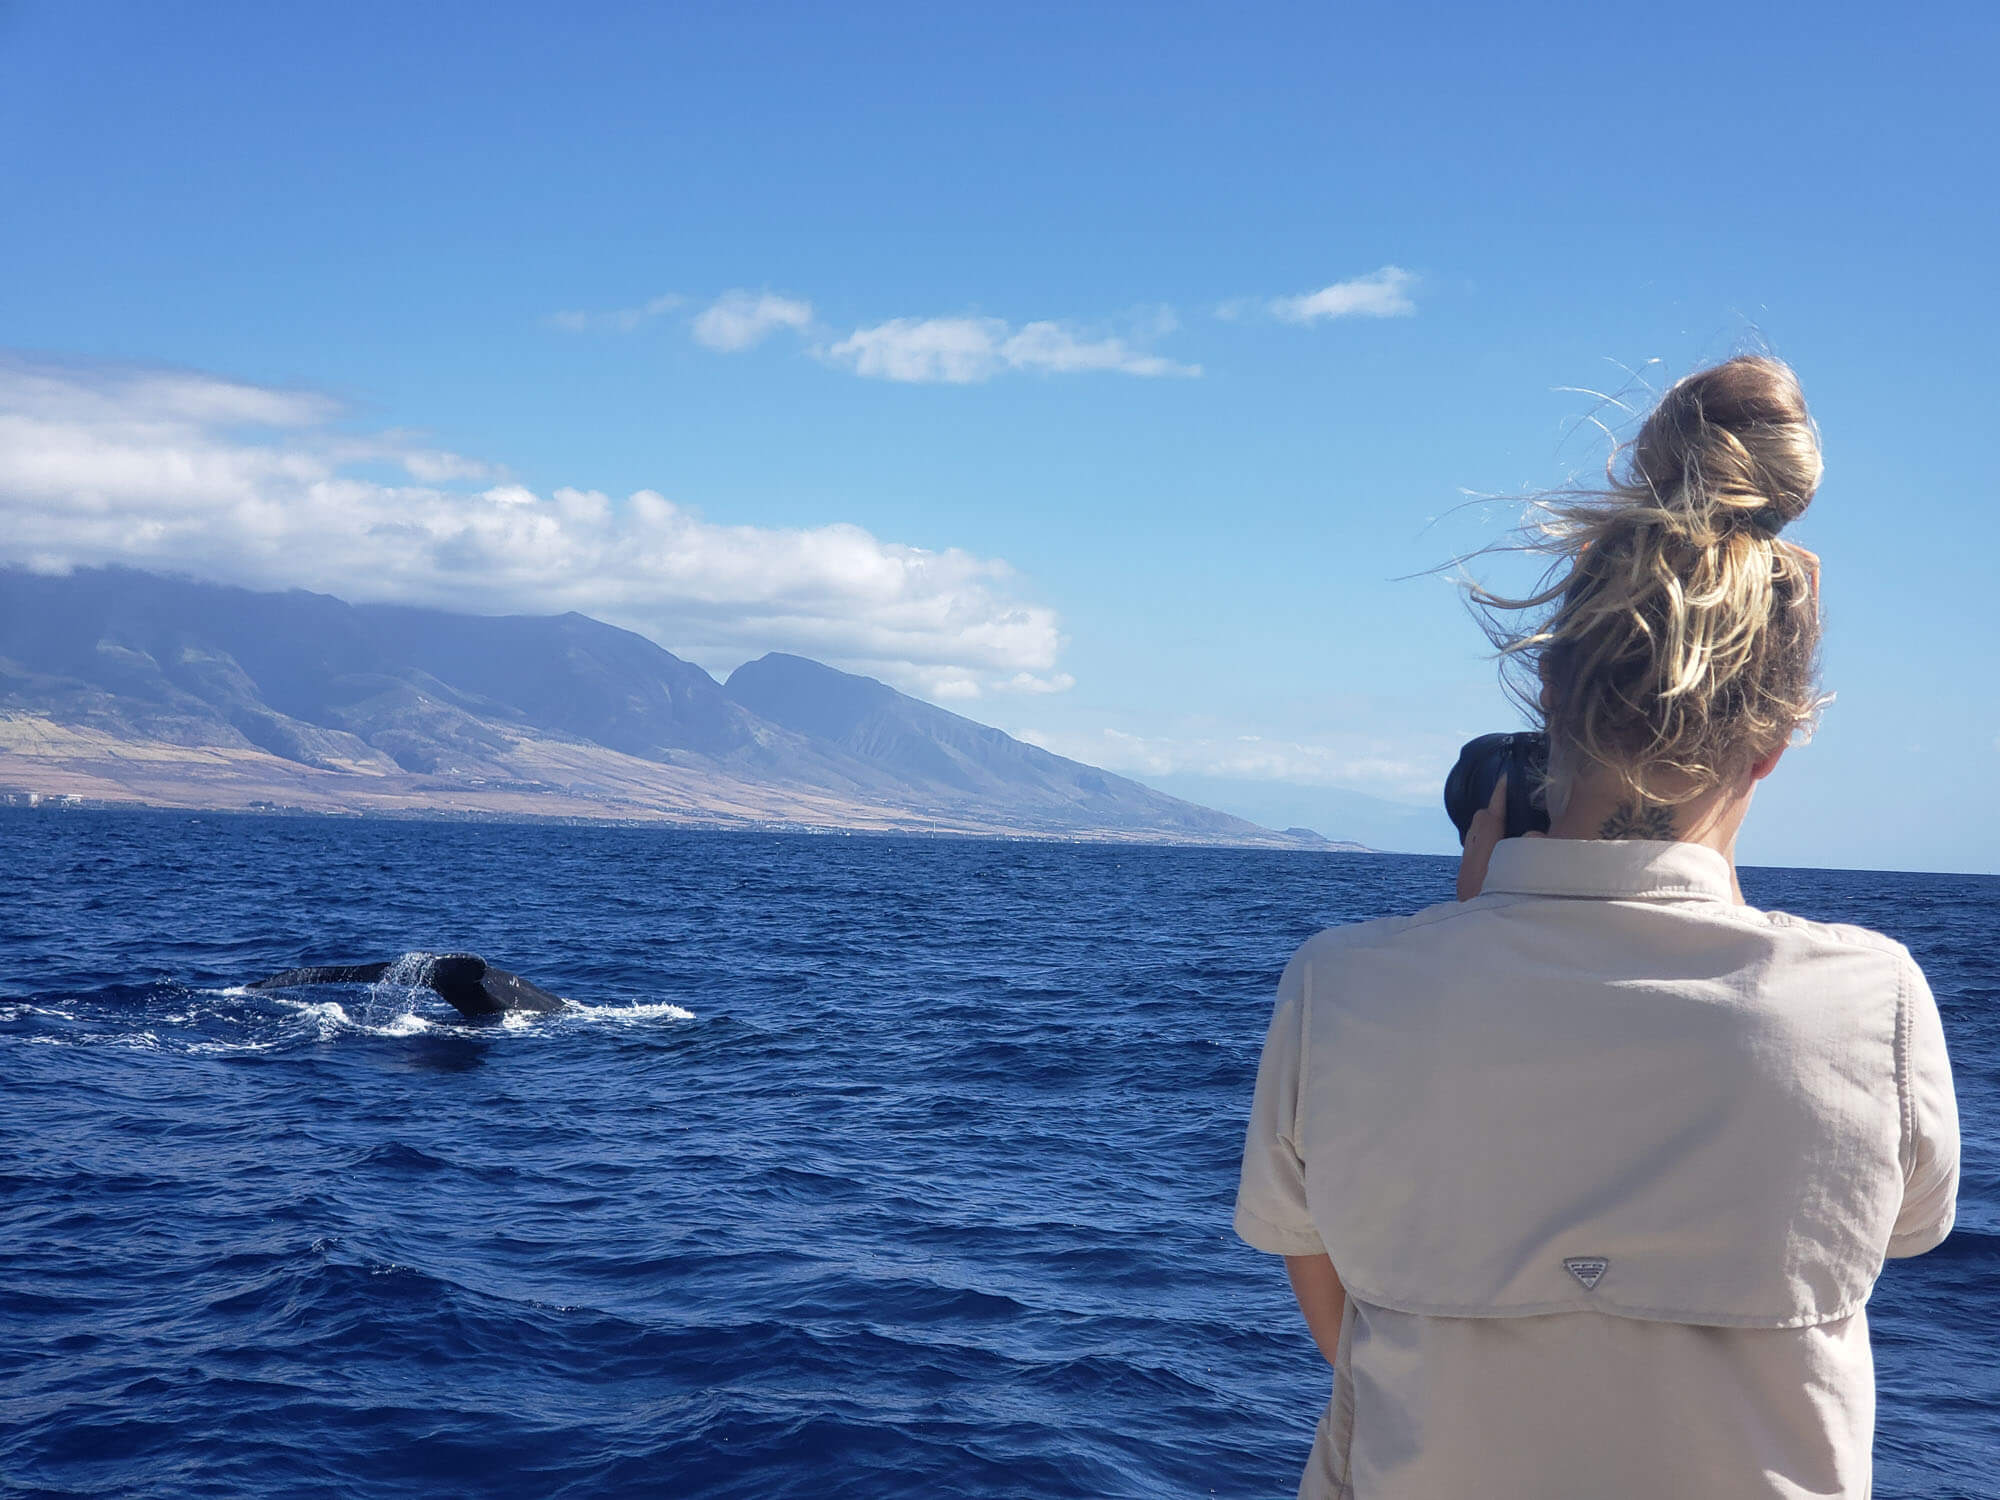 Maui Whale Watching Adventures